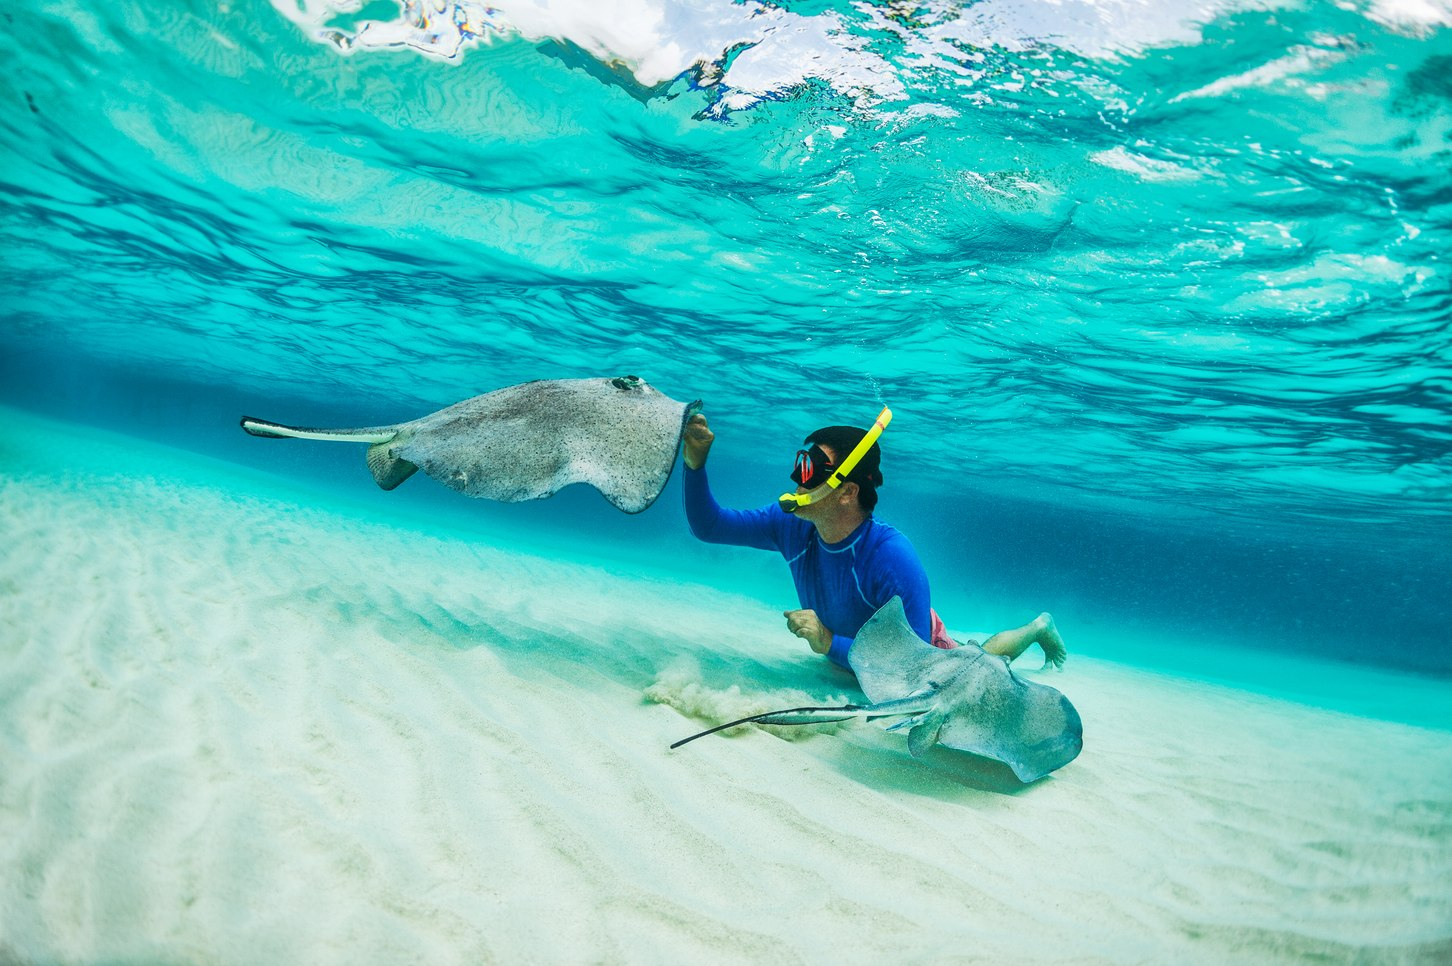 Things to see & do in Caribbean